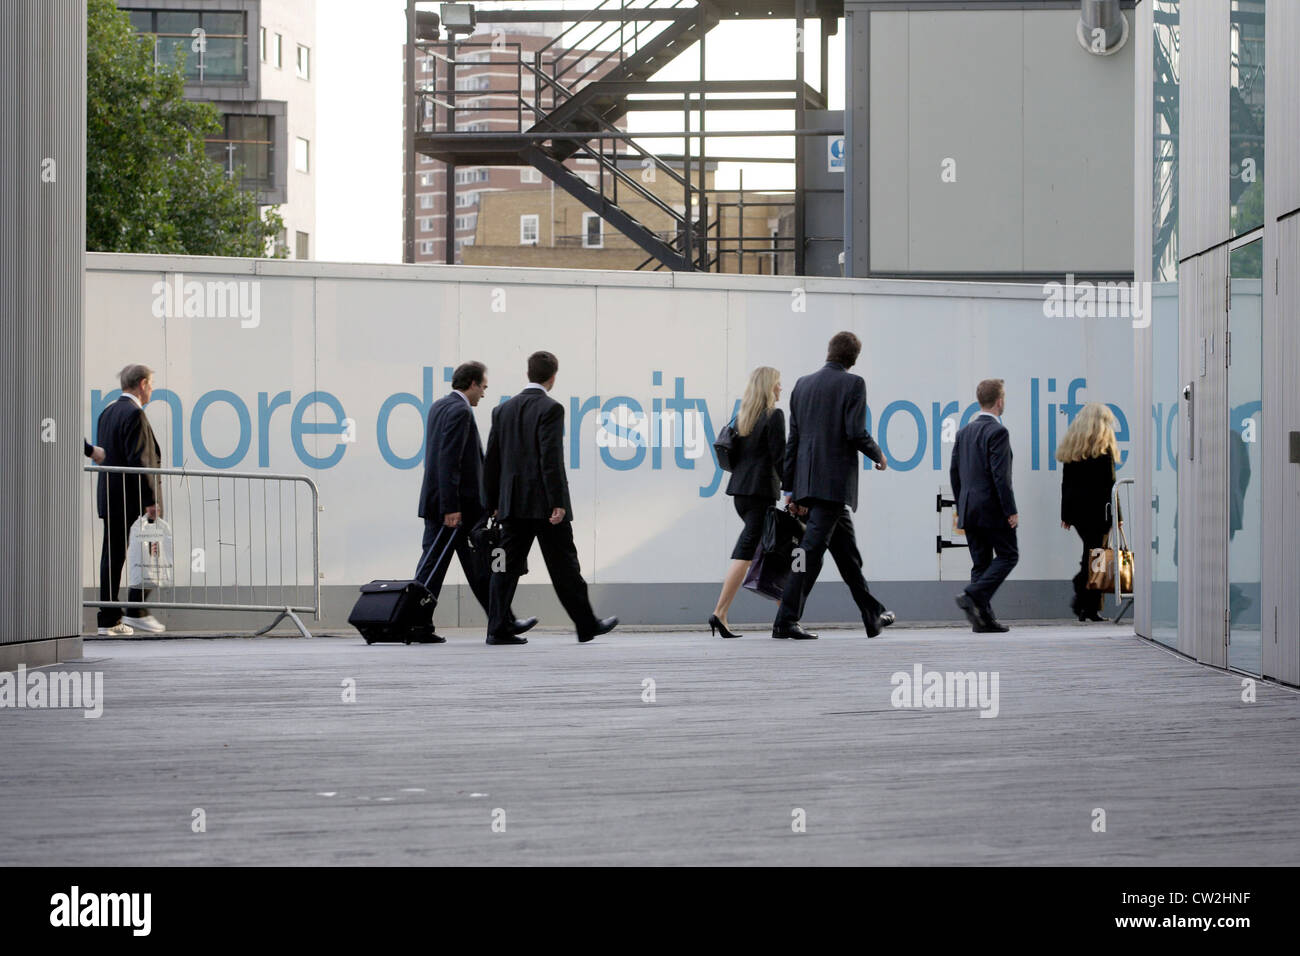 London, South Central, MORE DIVERSITY, MORE LIFE - Stock Image